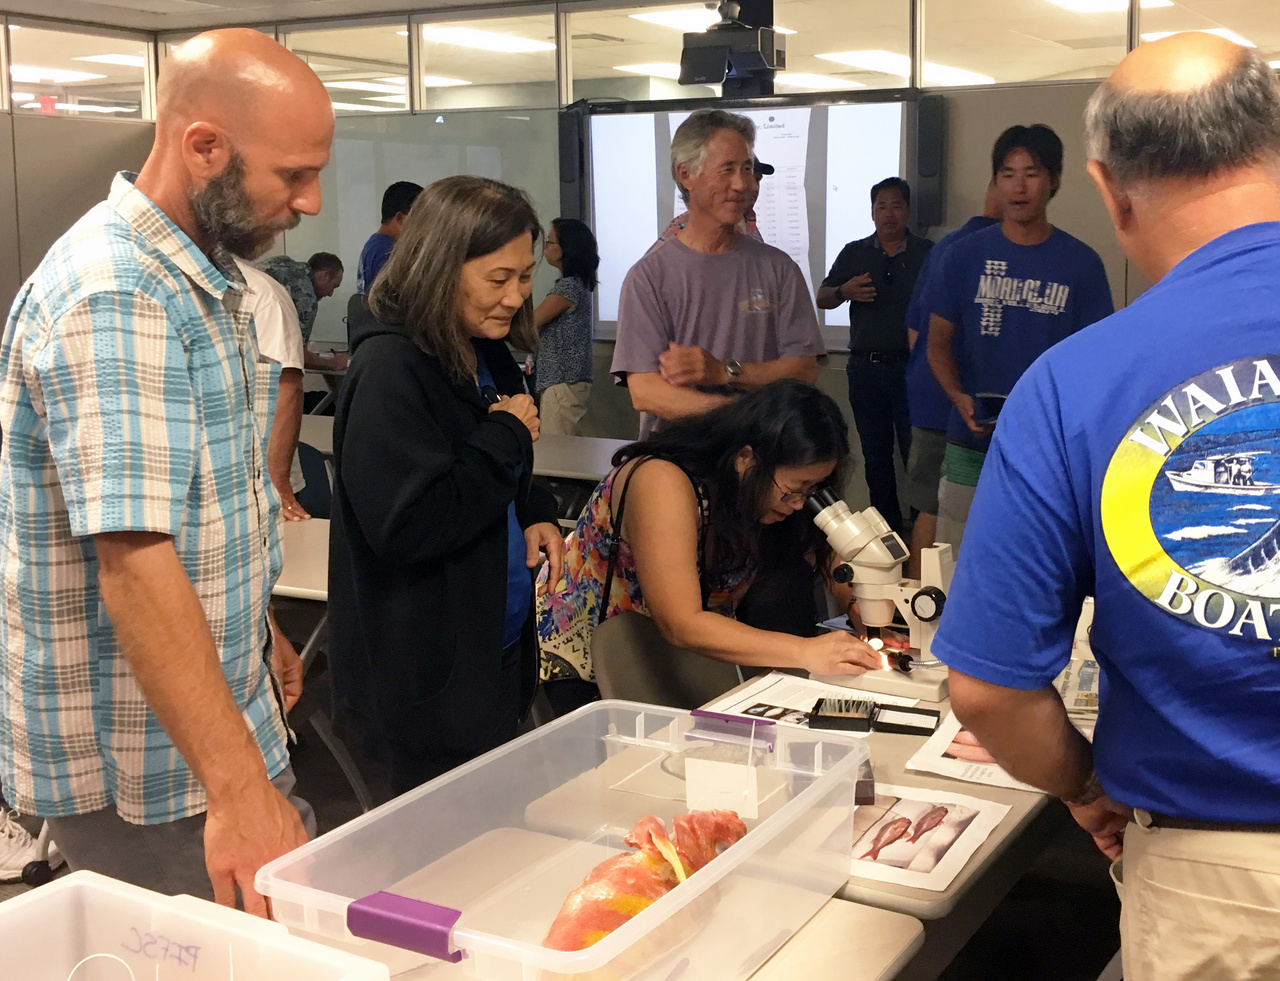 Participants learn about the science, life history, and traditions of bottomfish fishing in Hawaii